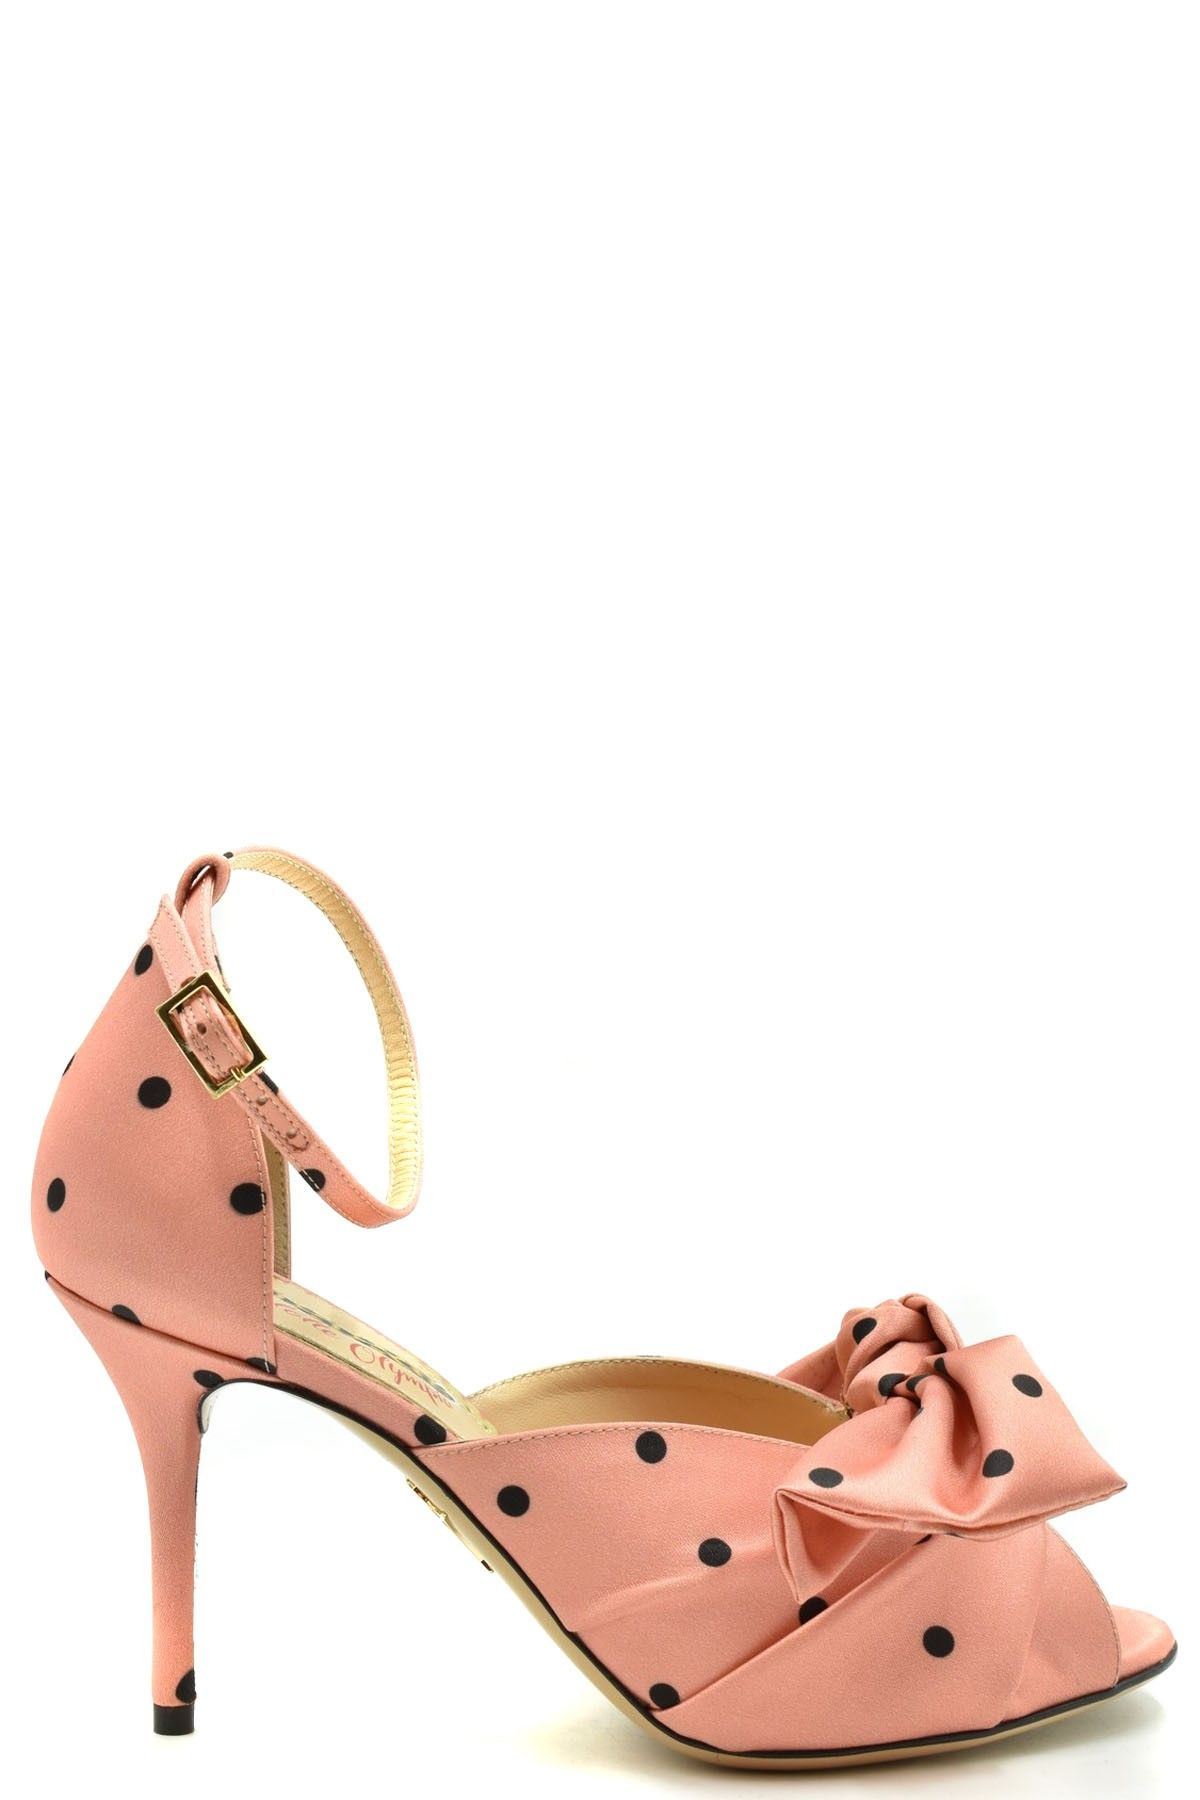 Charlotte Olympia CHARLOTTE OLYMPIA WOMEN'S PINK FABRIC SANDALS